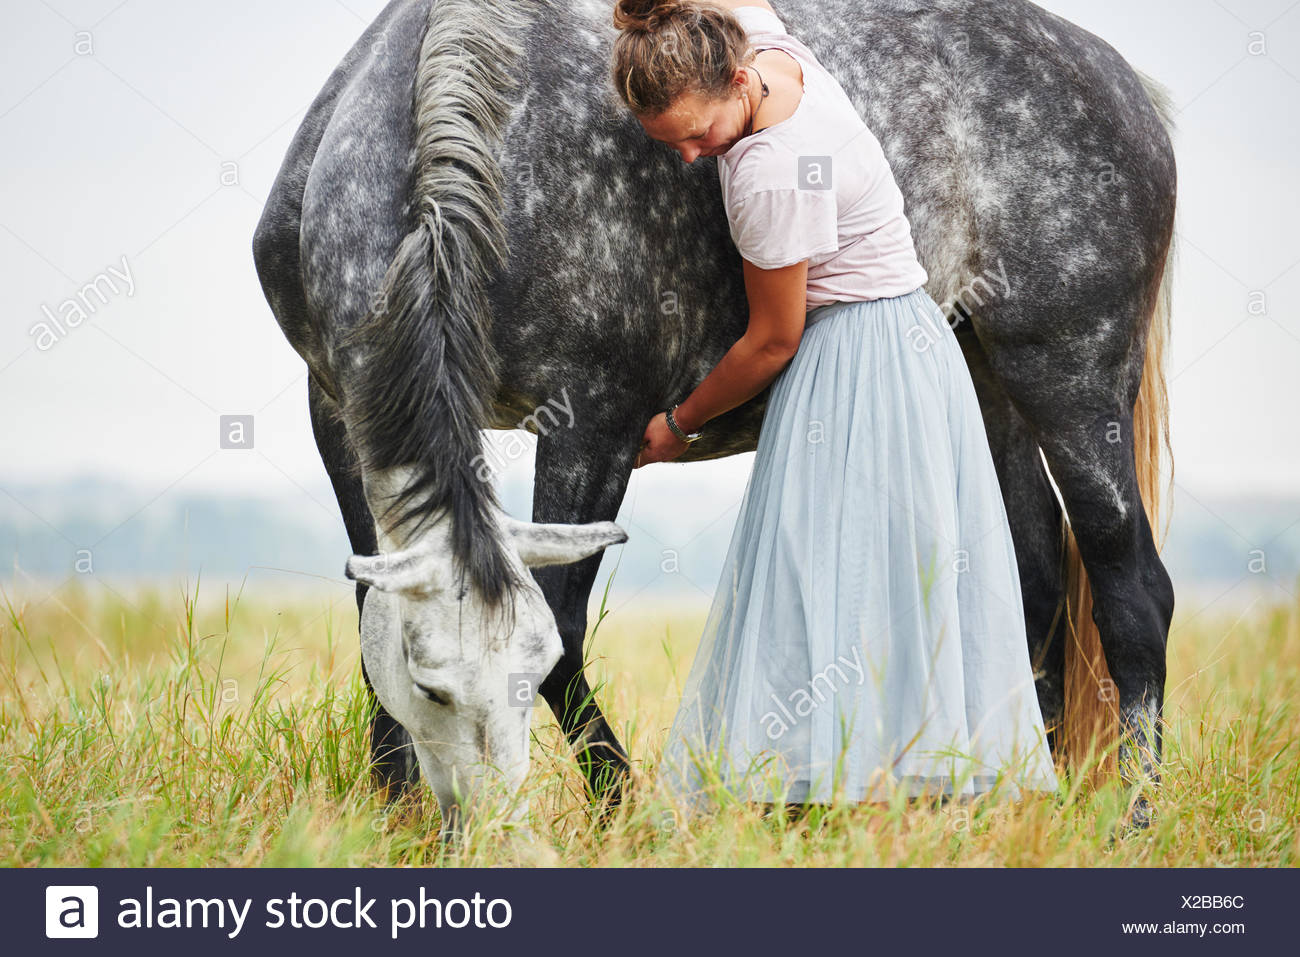 Woman in skirt with arms around dapple grey horse in field - Stock Image